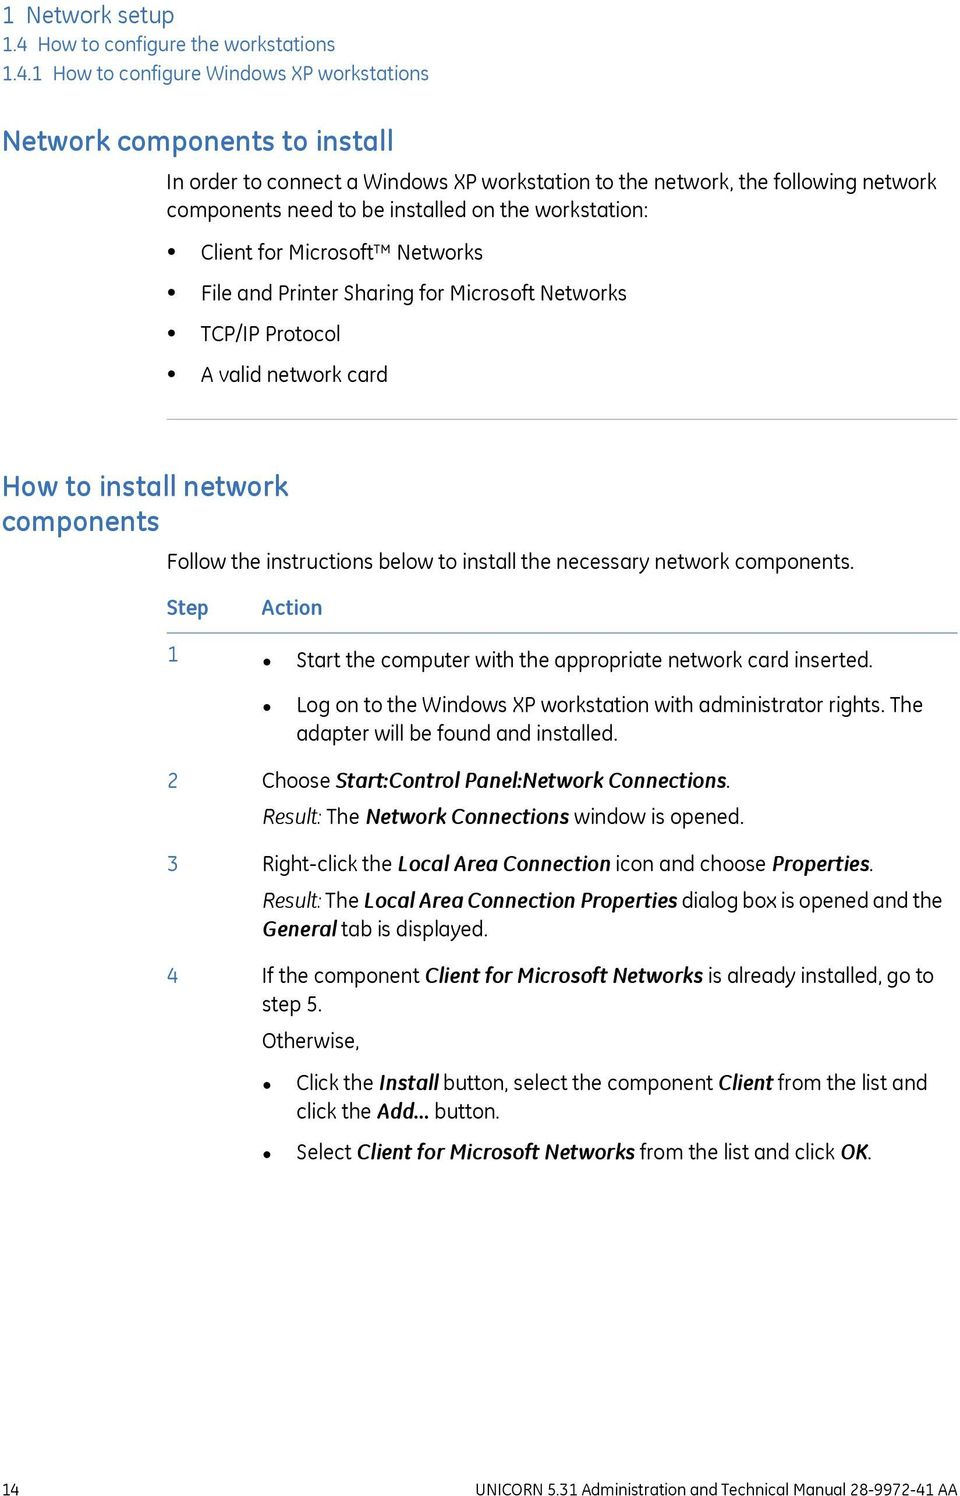 1 How to configure Windows XP workstations Network components to install In order to connect a Windows XP workstation to the network, the following network components need to be installed on the